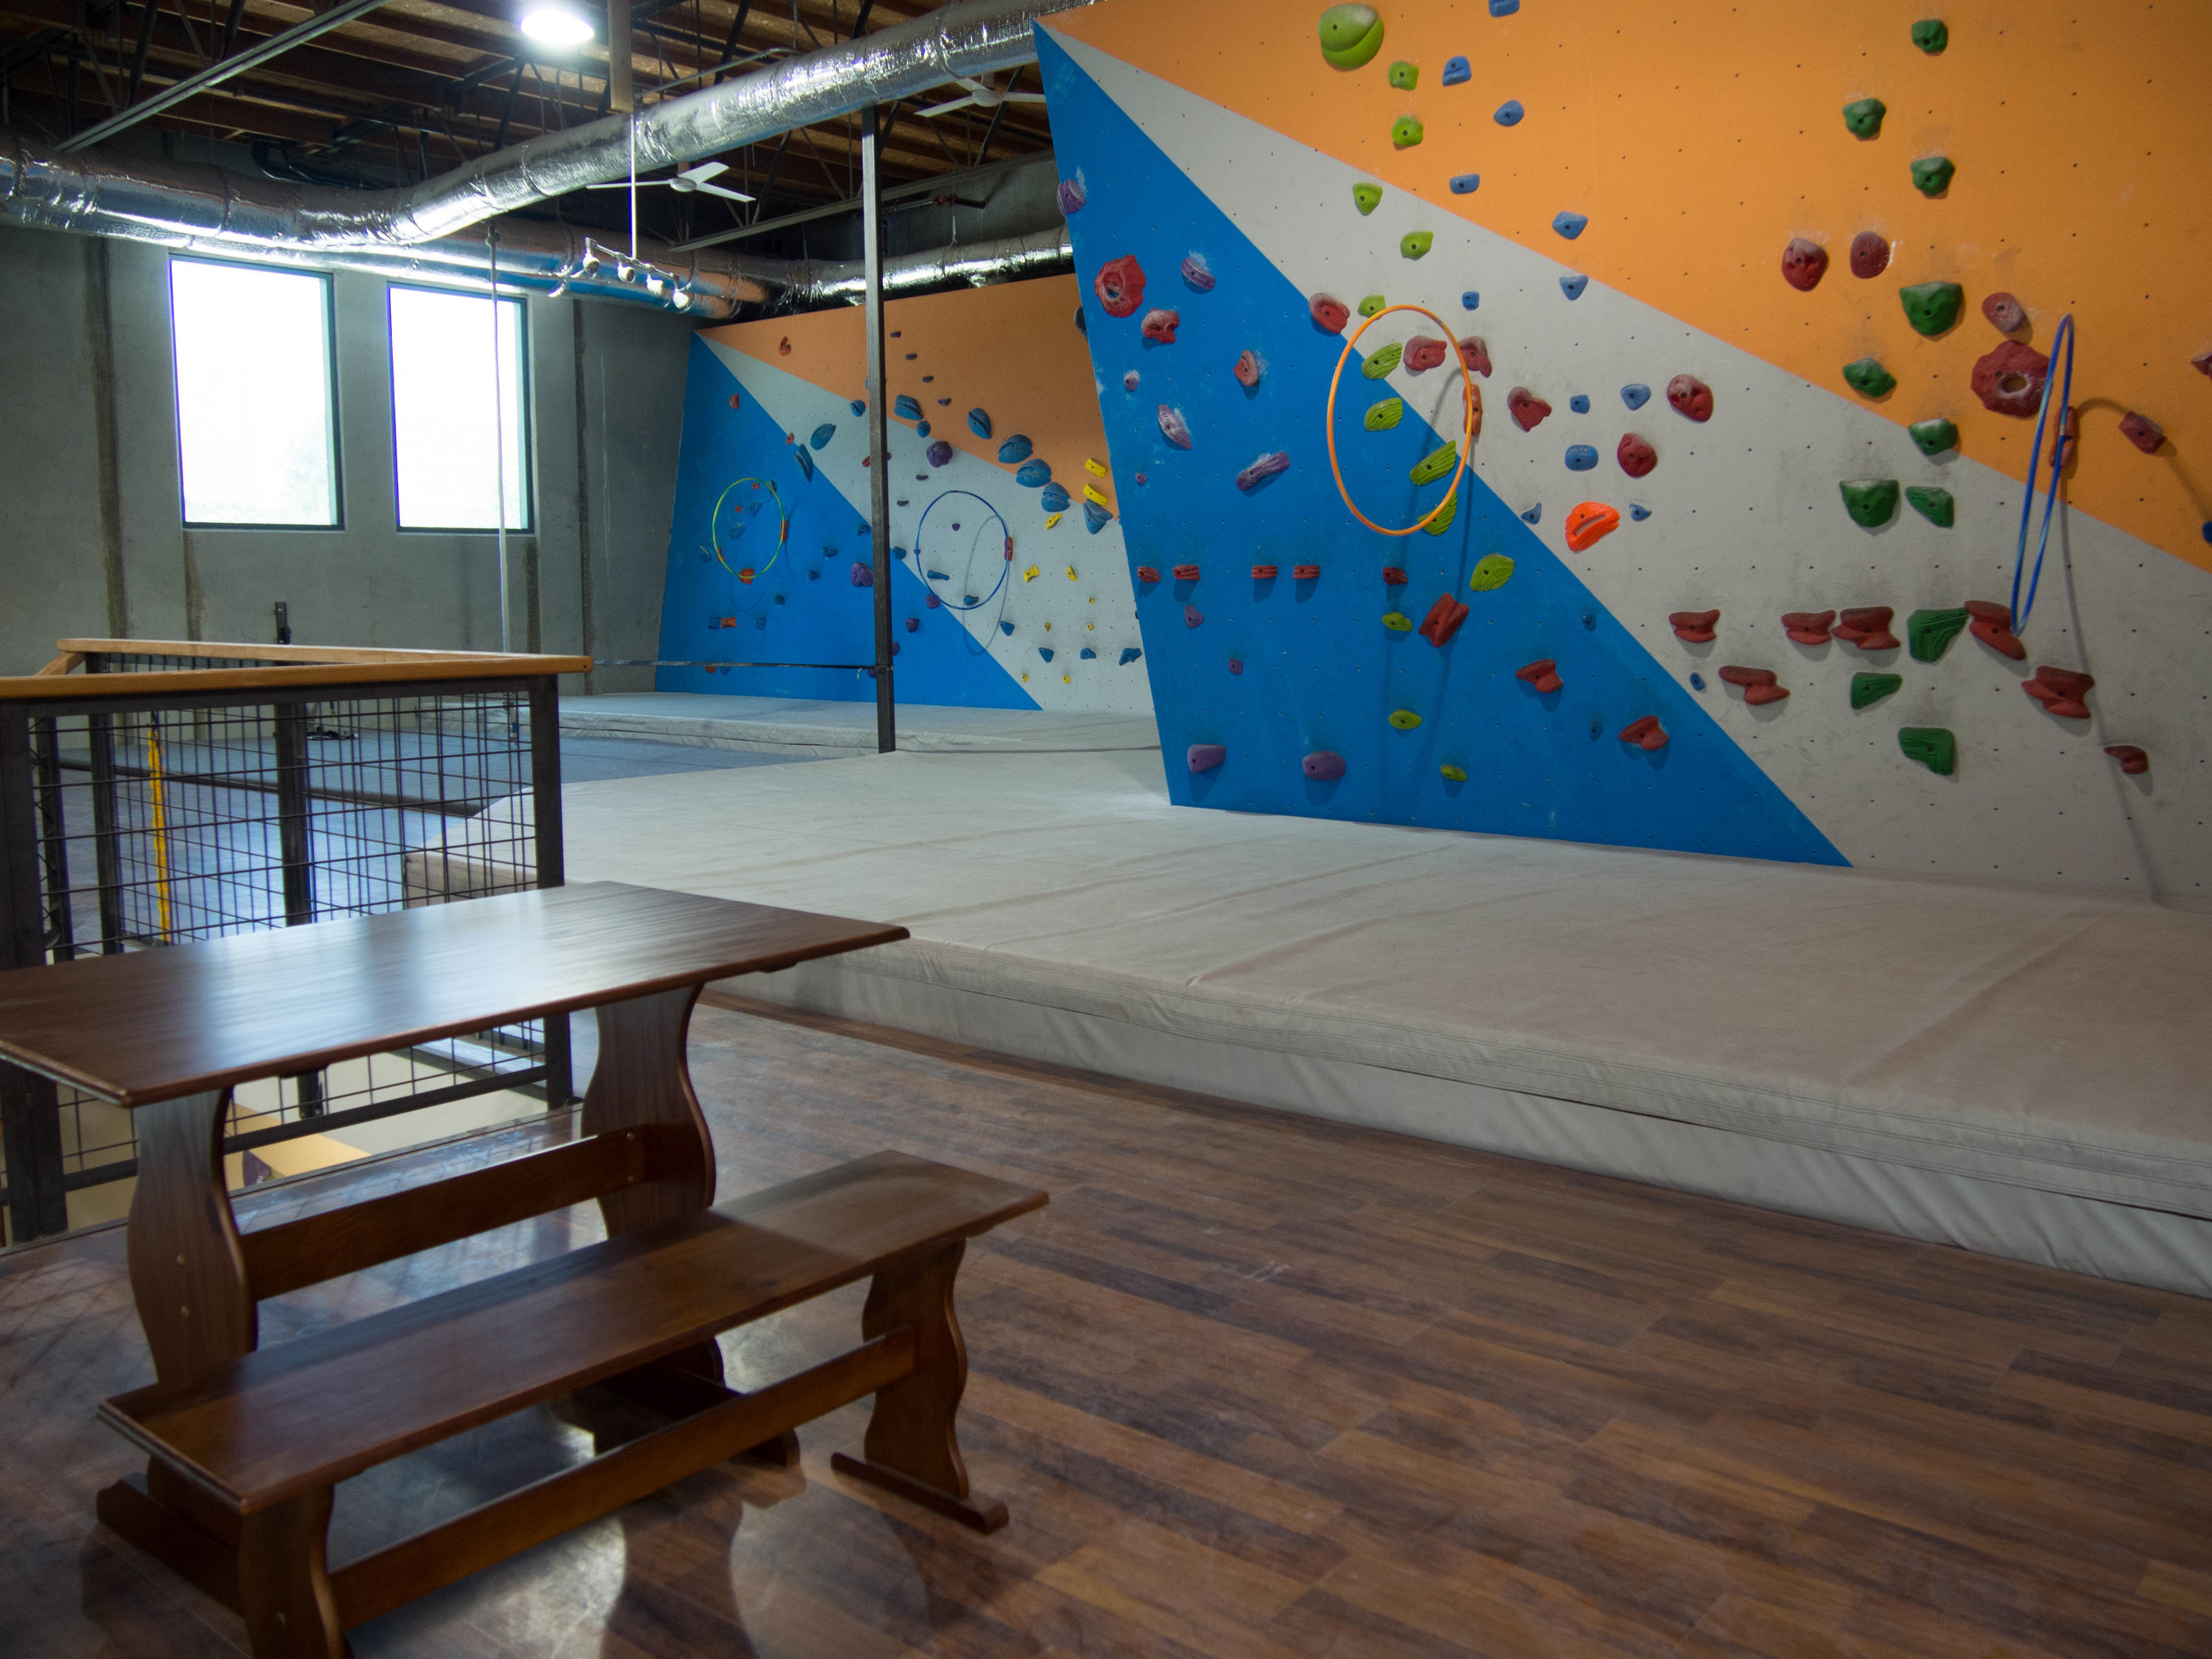 Bouldering Instructional area